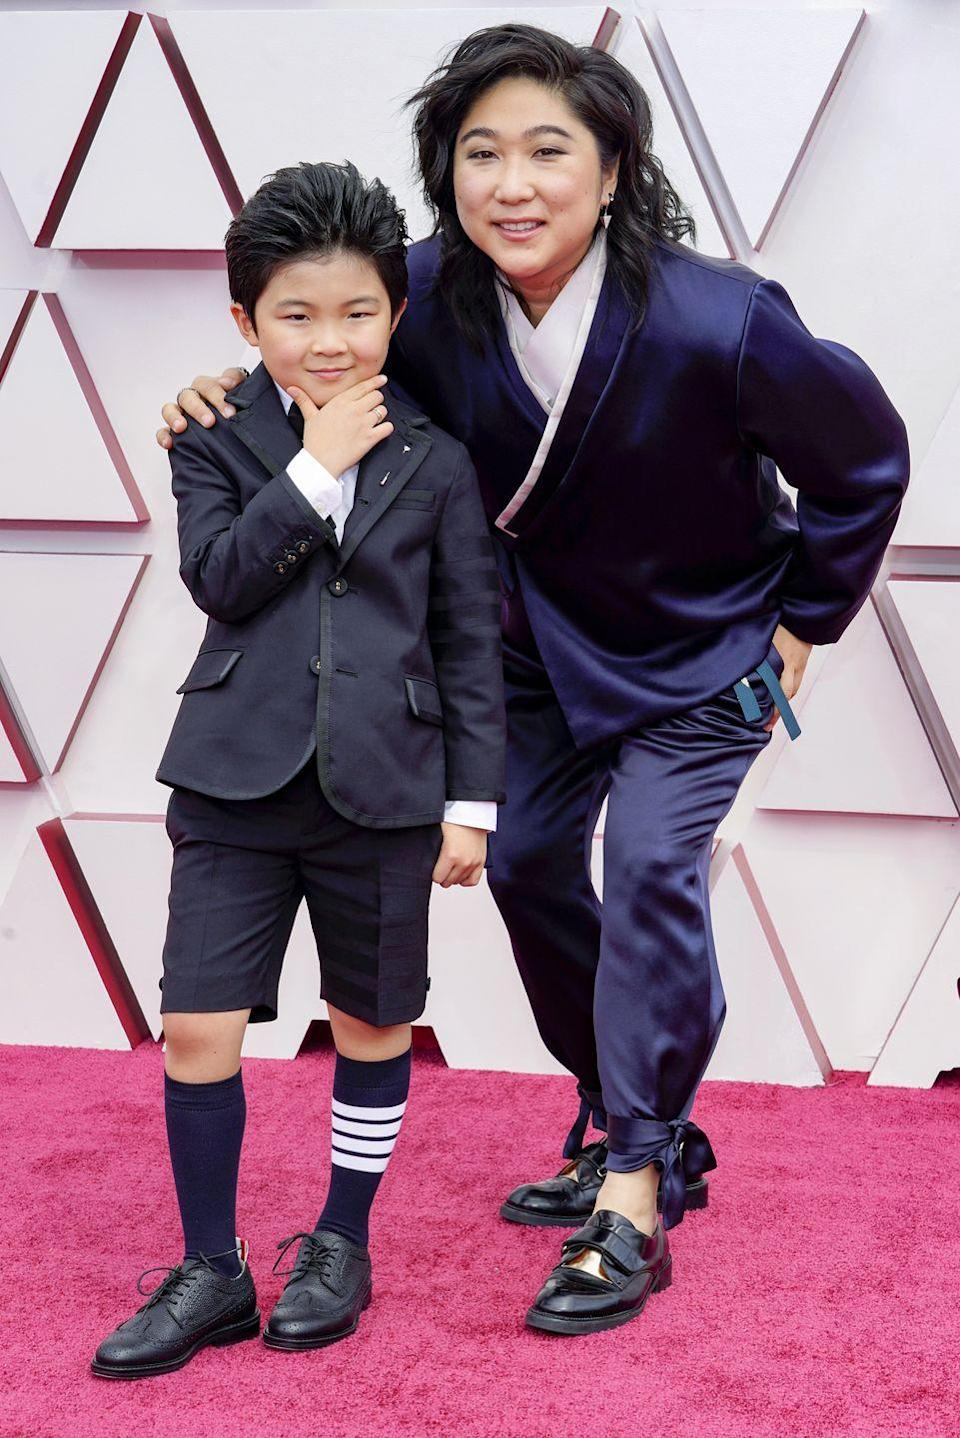 <p>The actor posed up a storm in Thom Browne on the red carpet and couldn't help but deliver his best Blue Steel impression on the red carpet. </p><p>The Minari star celebrated his 9th birthday two days before his red carpet moment. </p>